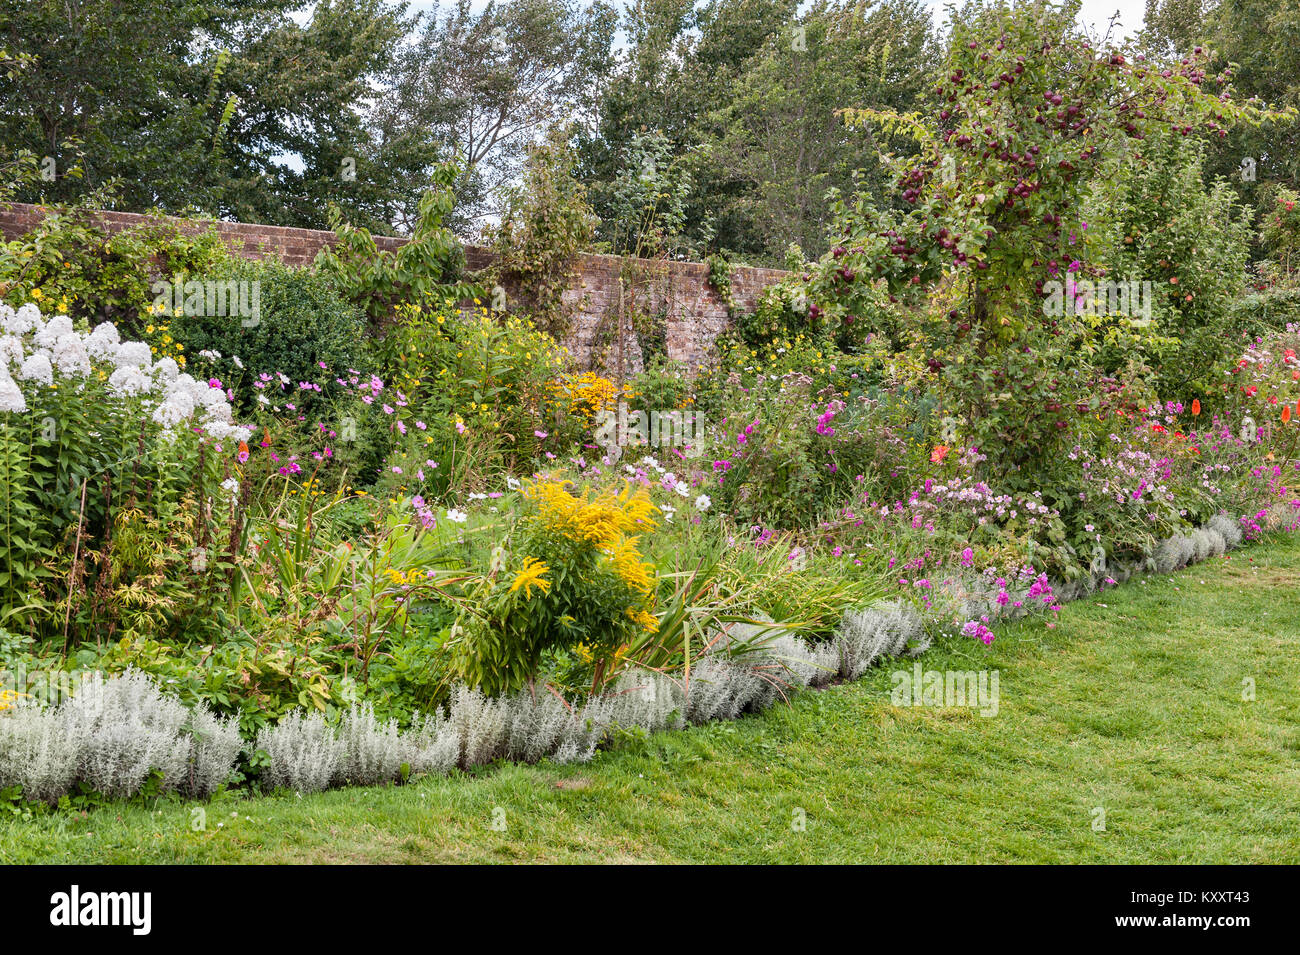 Charleston Farmhouse, East Sussex, UK.Home to the artists Vanessa Bell and Duncan Grant, it was a meeting place - Stock Image